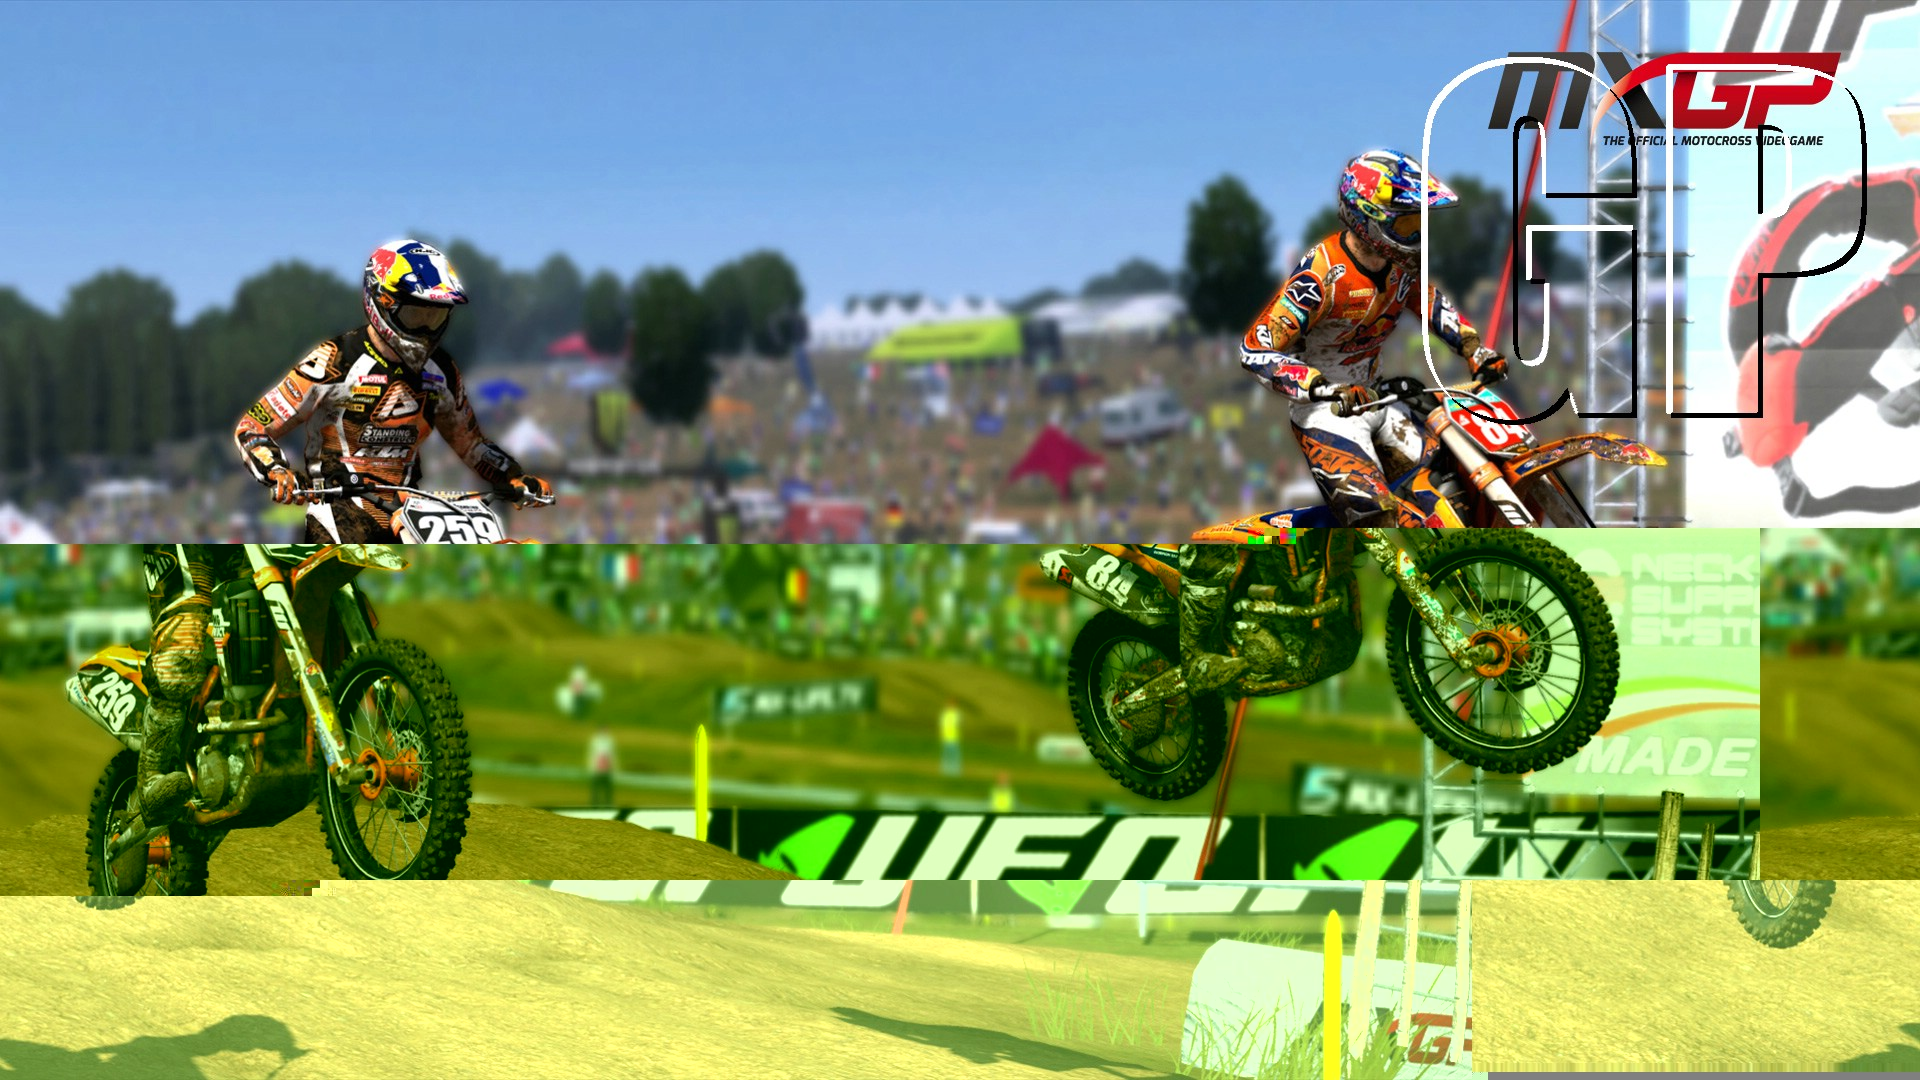 Mxgp the Official Motocross Video game Free Download - Ocean Of Games